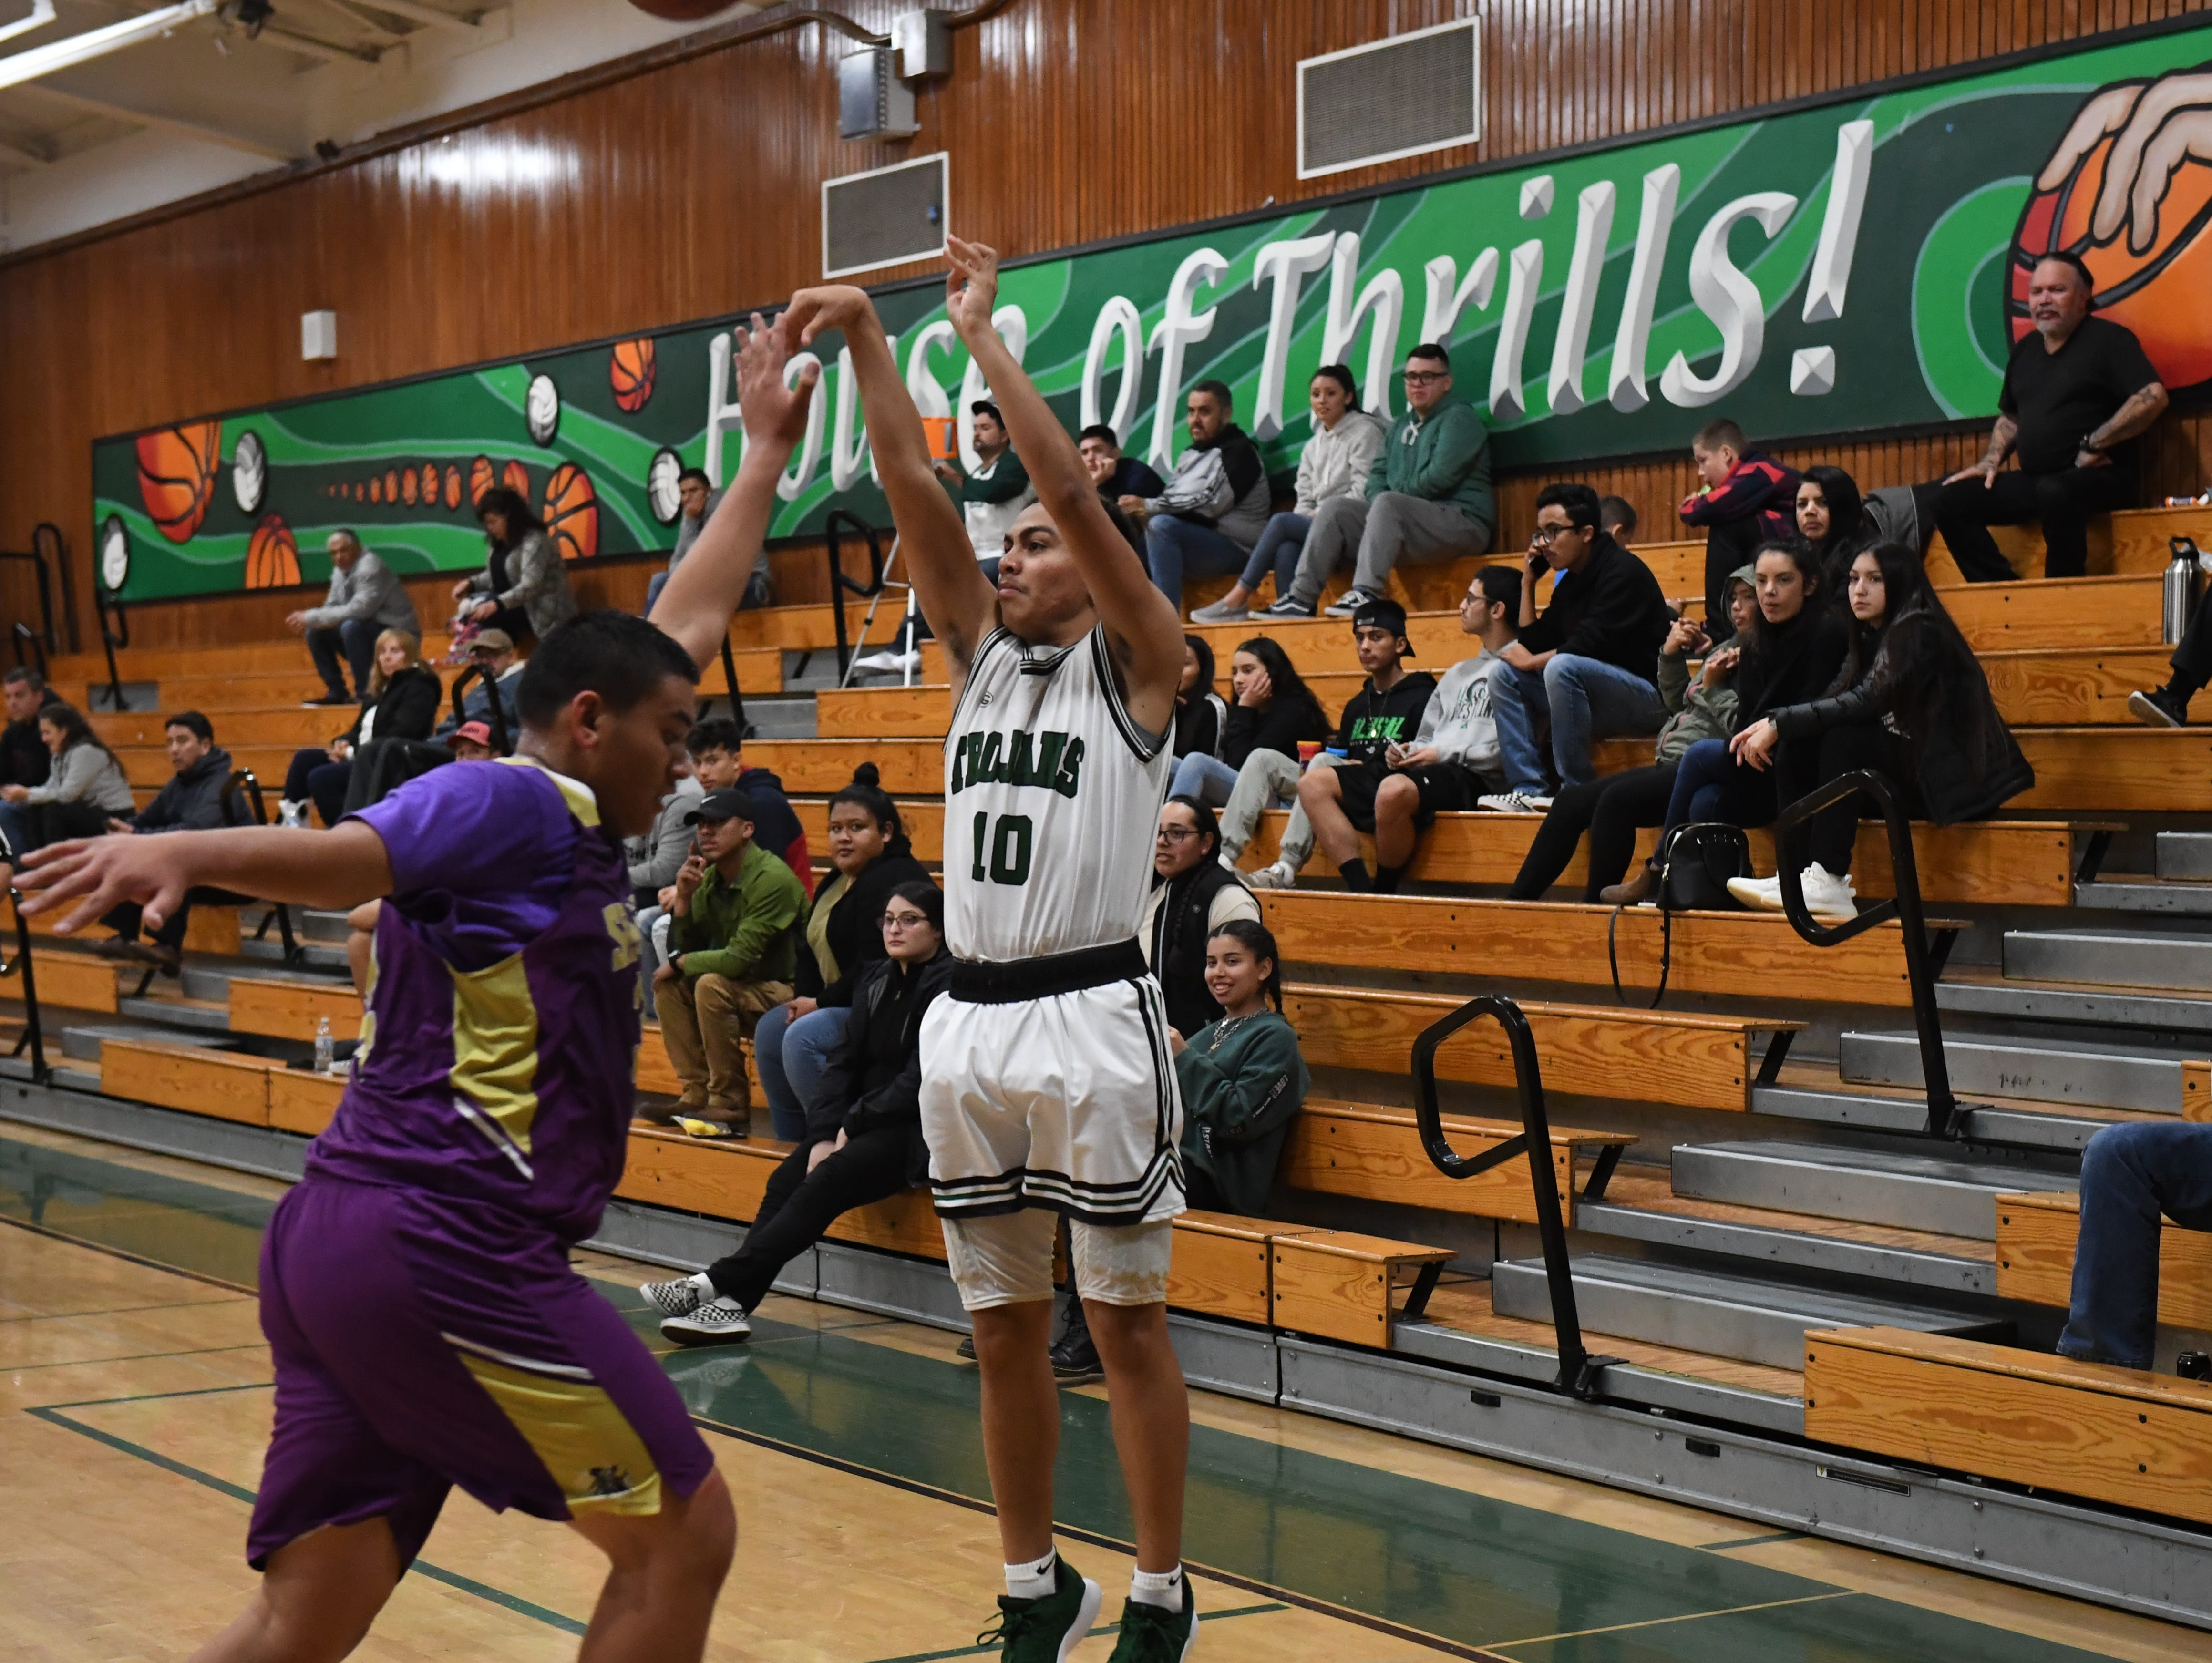 Alisal guard Vincent Gonzalez (10) hits a 3-point shot from the right baseline.